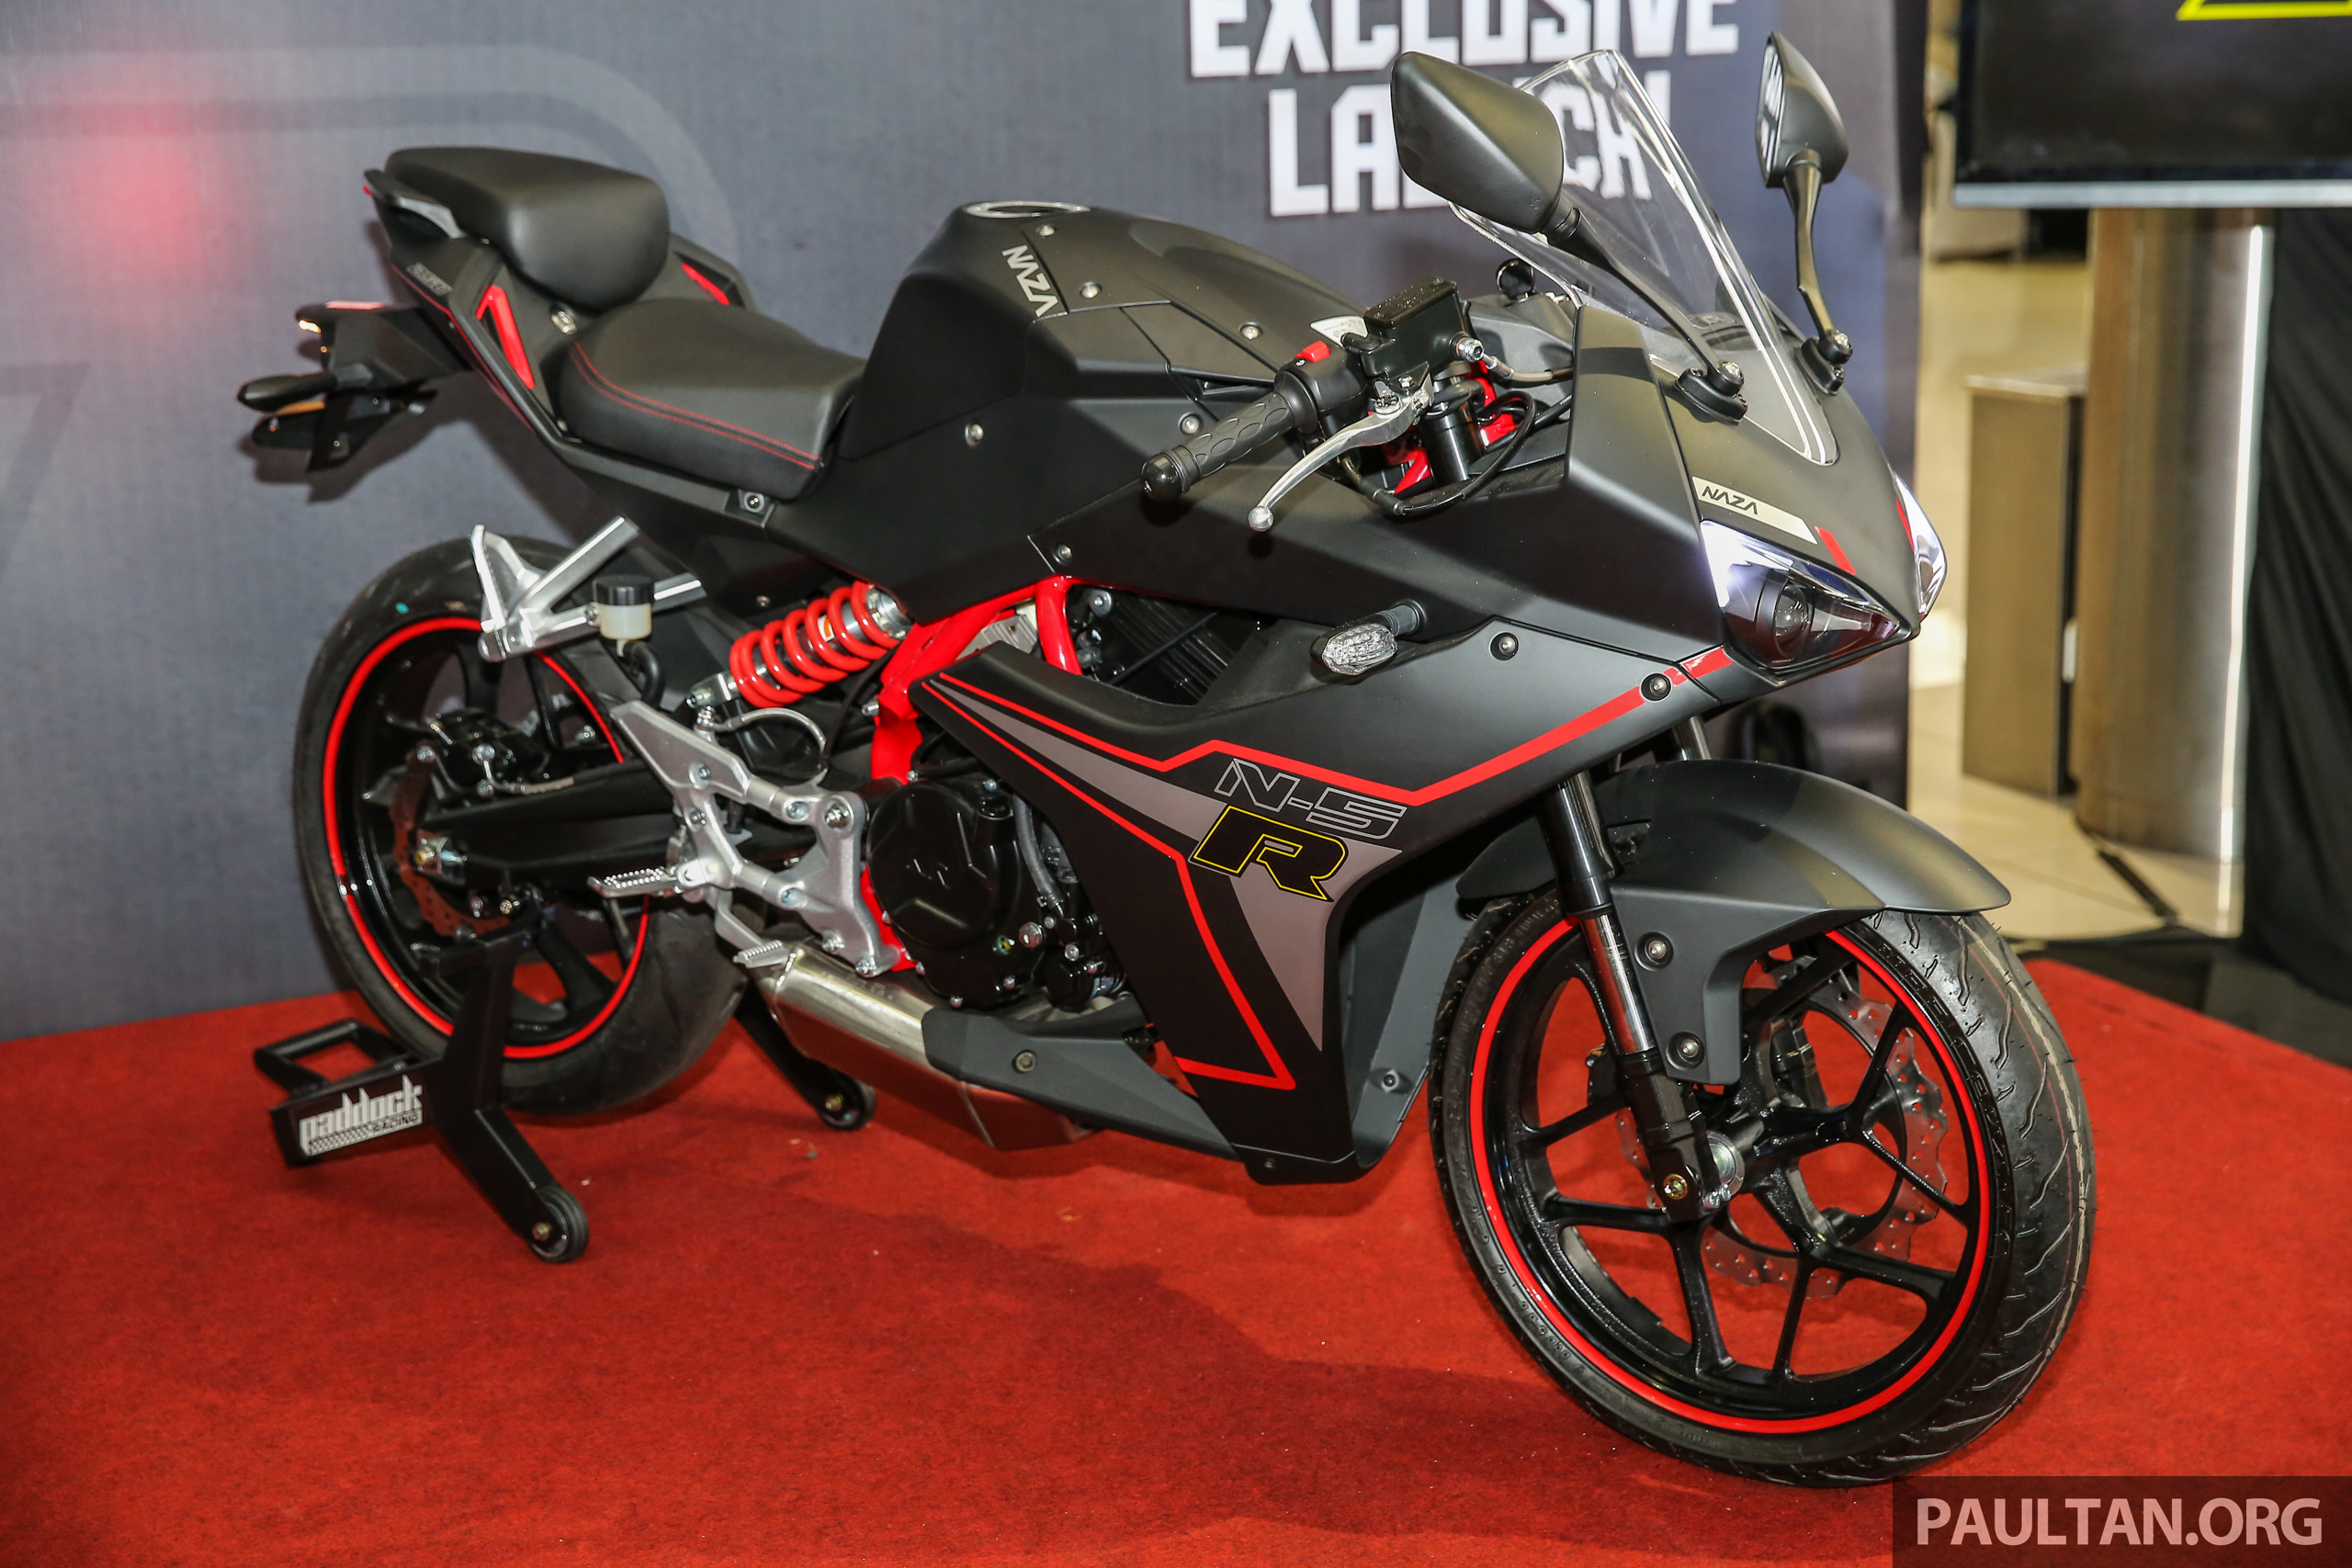 2016 Naza N5r Launched In Malaysia From Rm13 888 Paultan Org